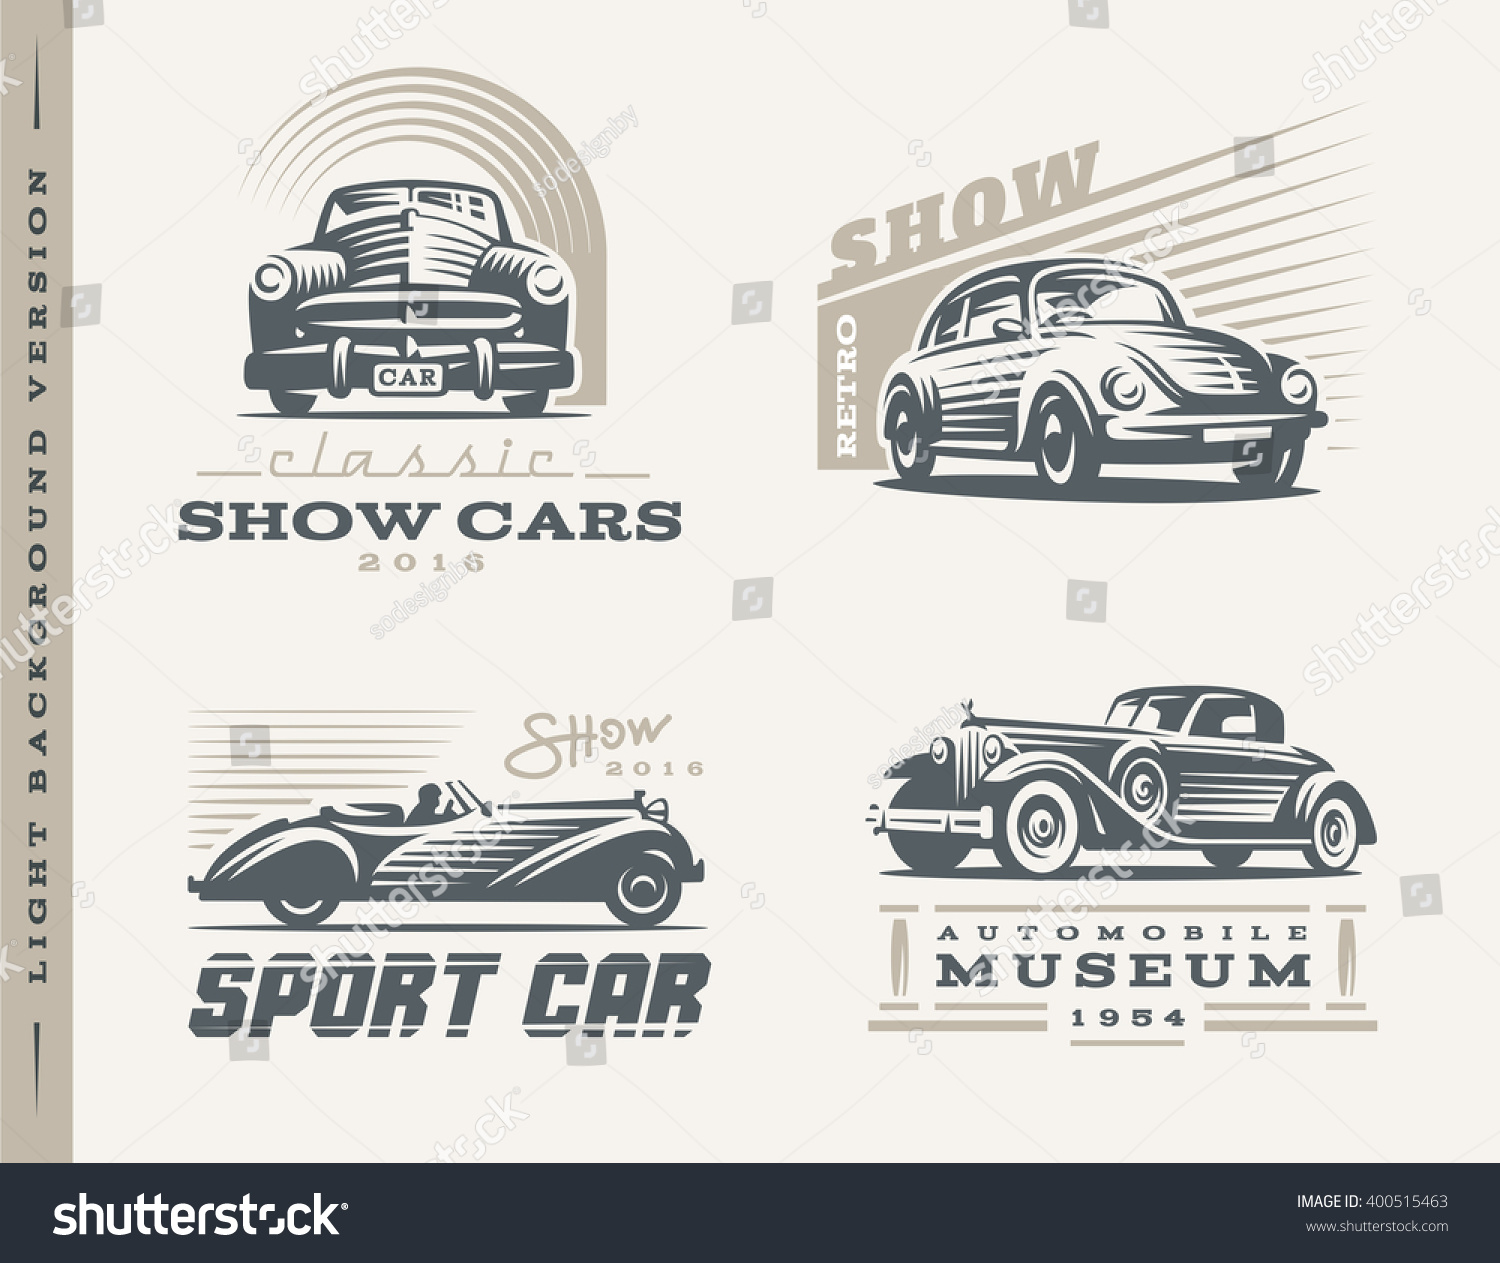 Royalty Free Classic Cars Logo Illustrations On Stock